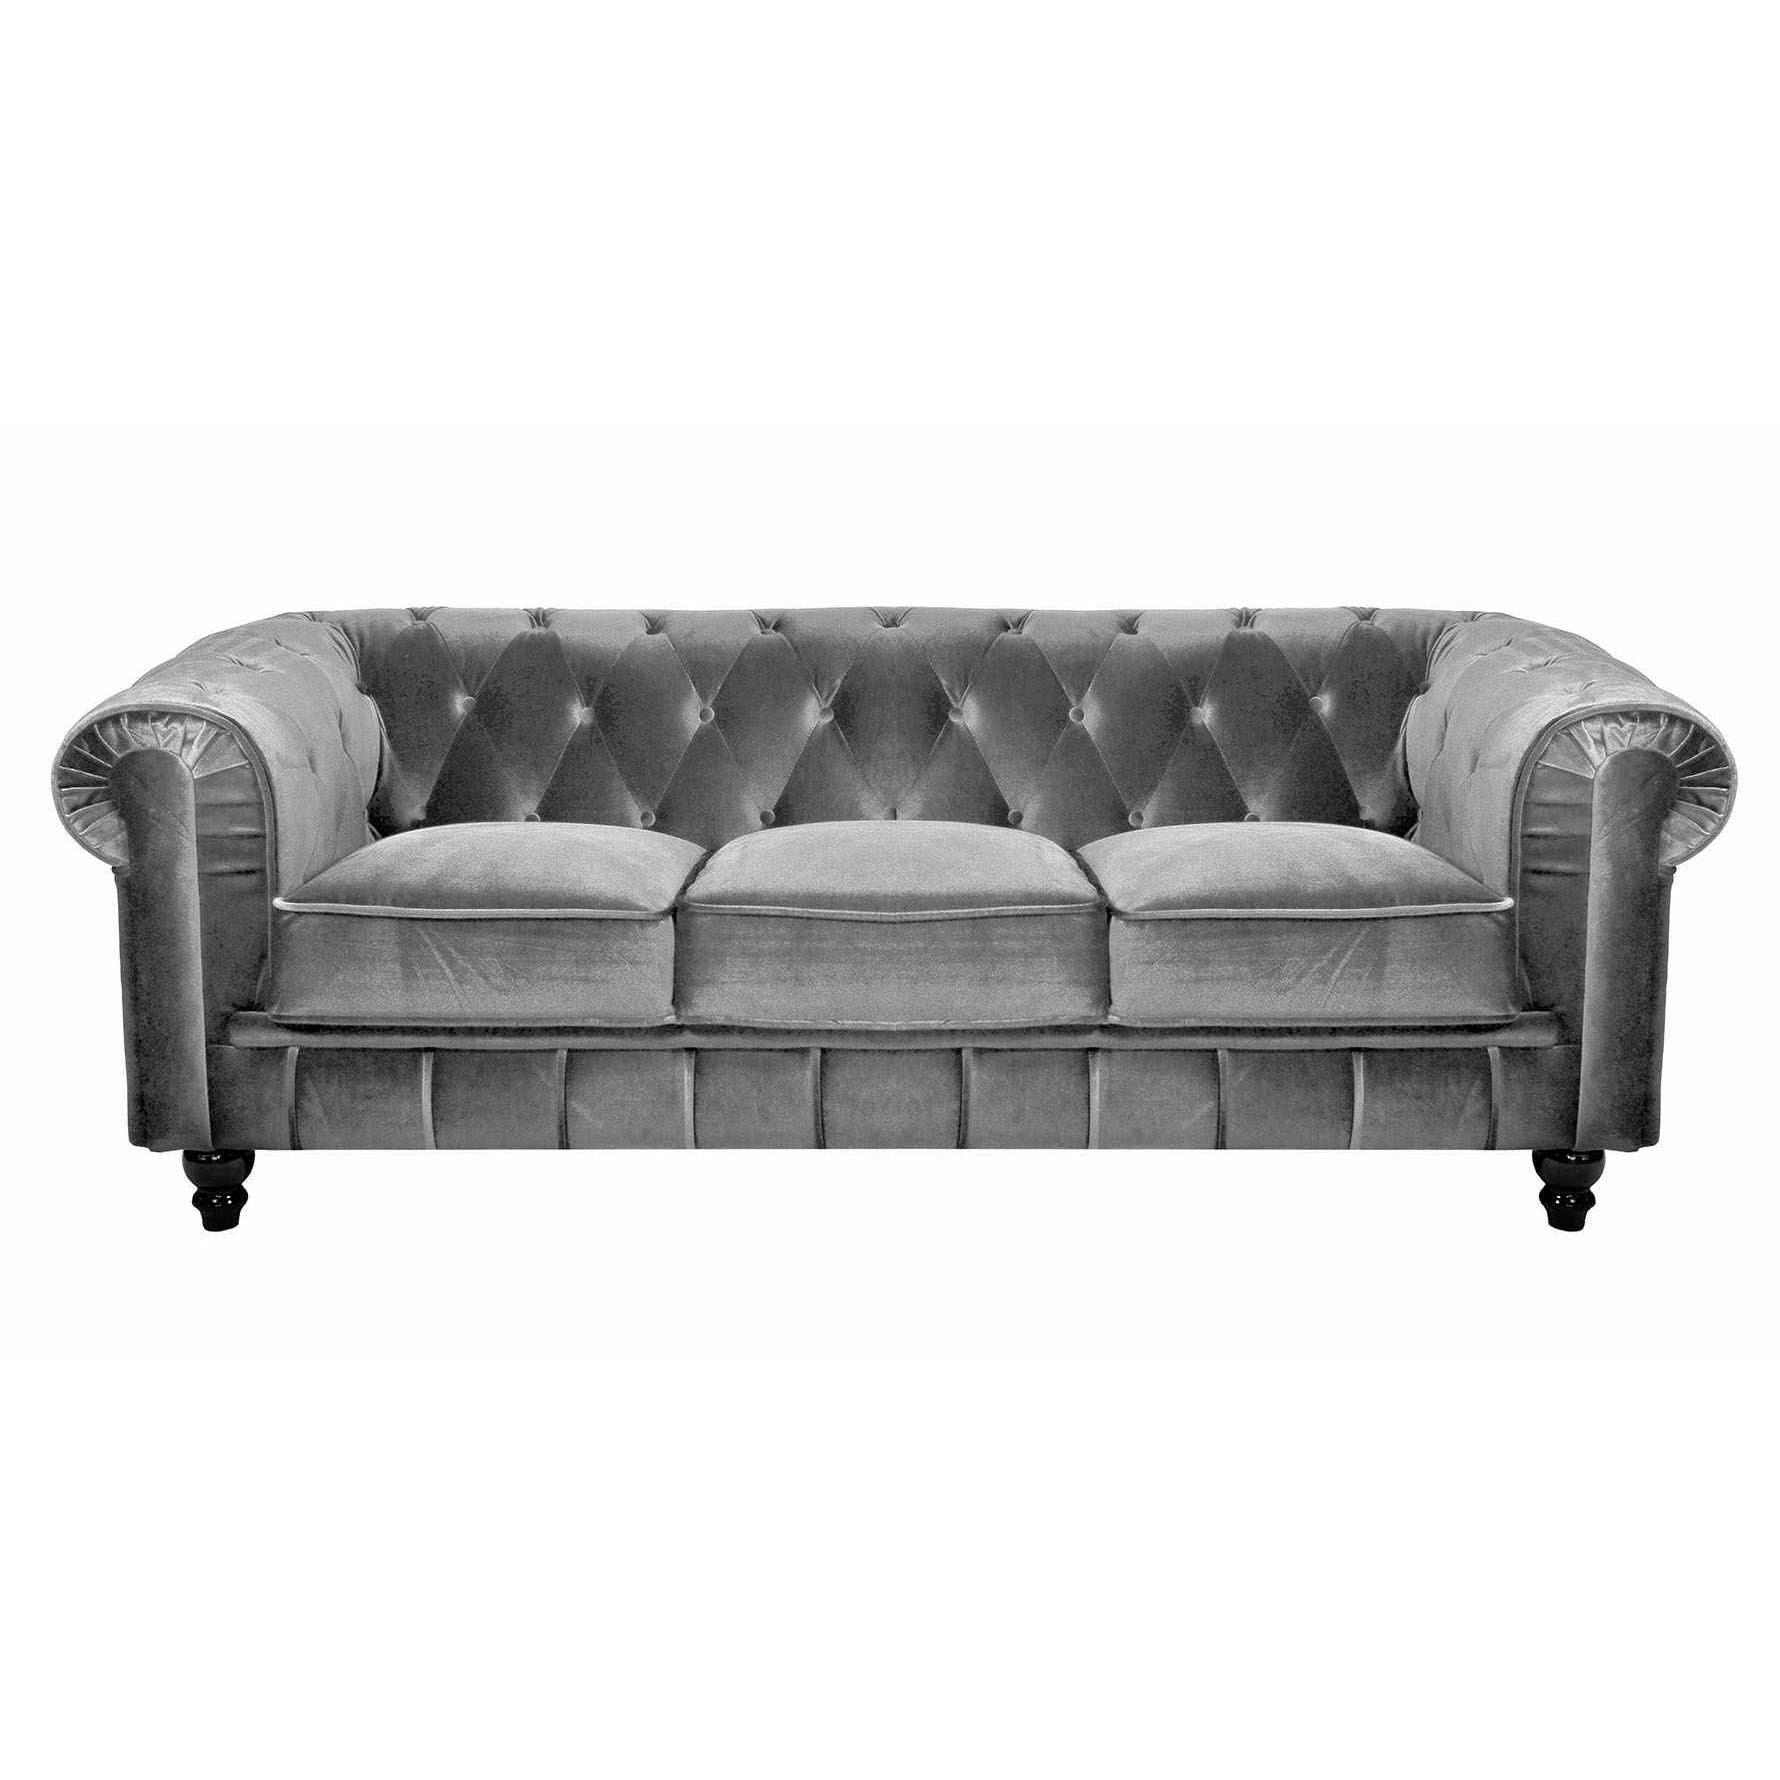 Deco in paris canape 3 places velours gris chesterfield - Canape chesterfield tissu gris ...